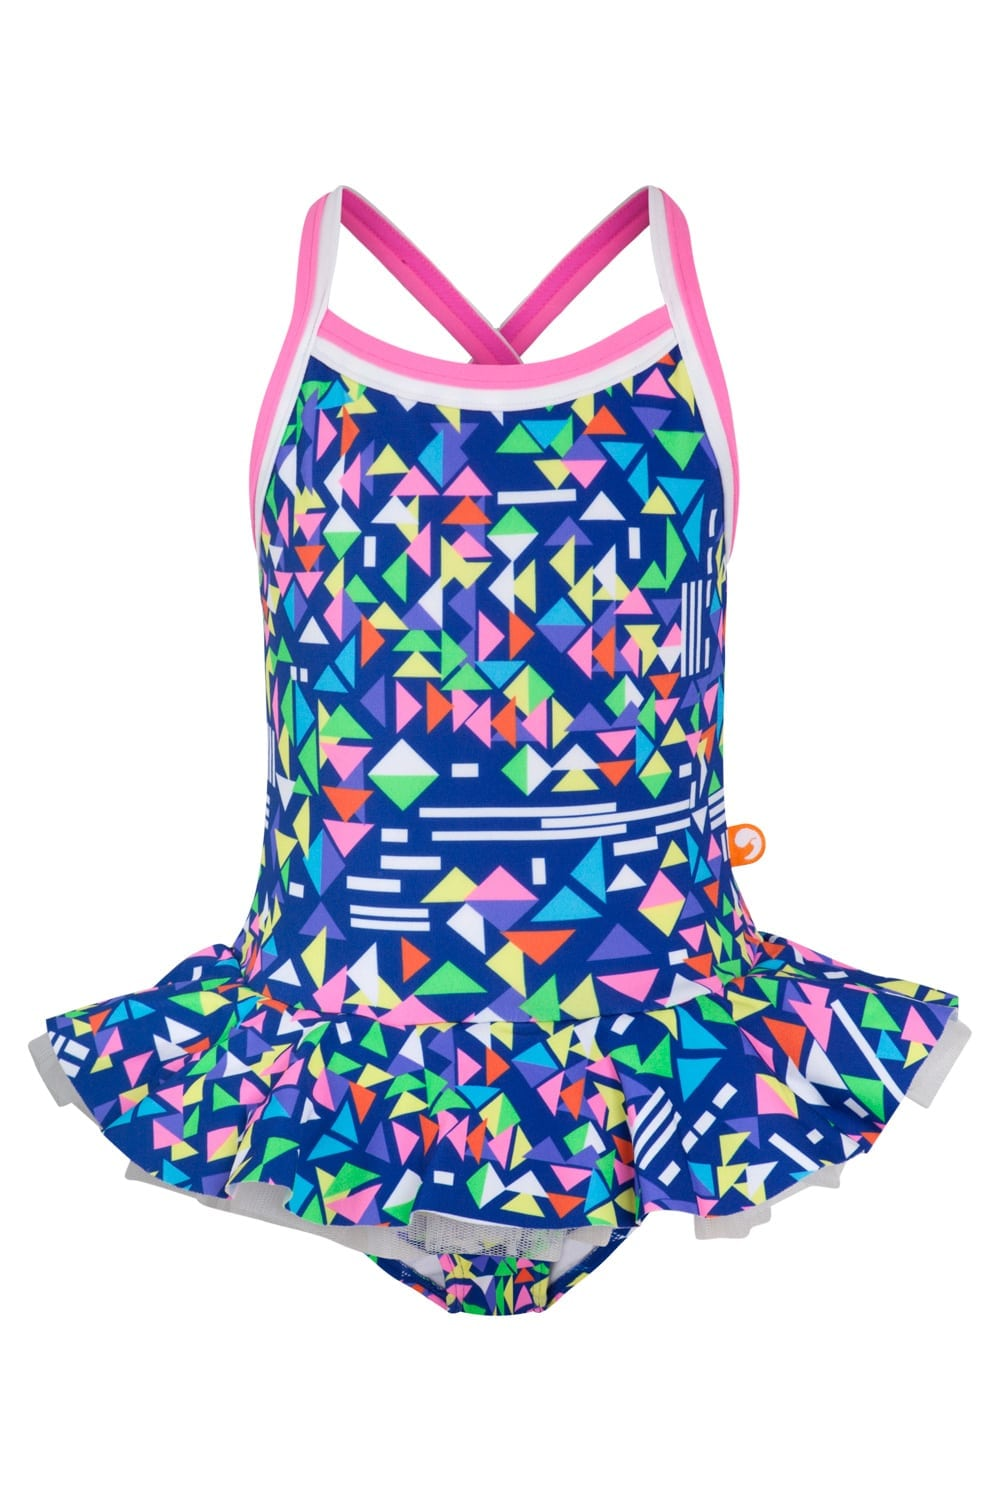 FUSION POP CROSS BACK ONE PIECE (JUNIOR) 50% OFF - Chachi's Bay - kids rashies - kids swimwear - kids swim shoes - round towels - beach towels